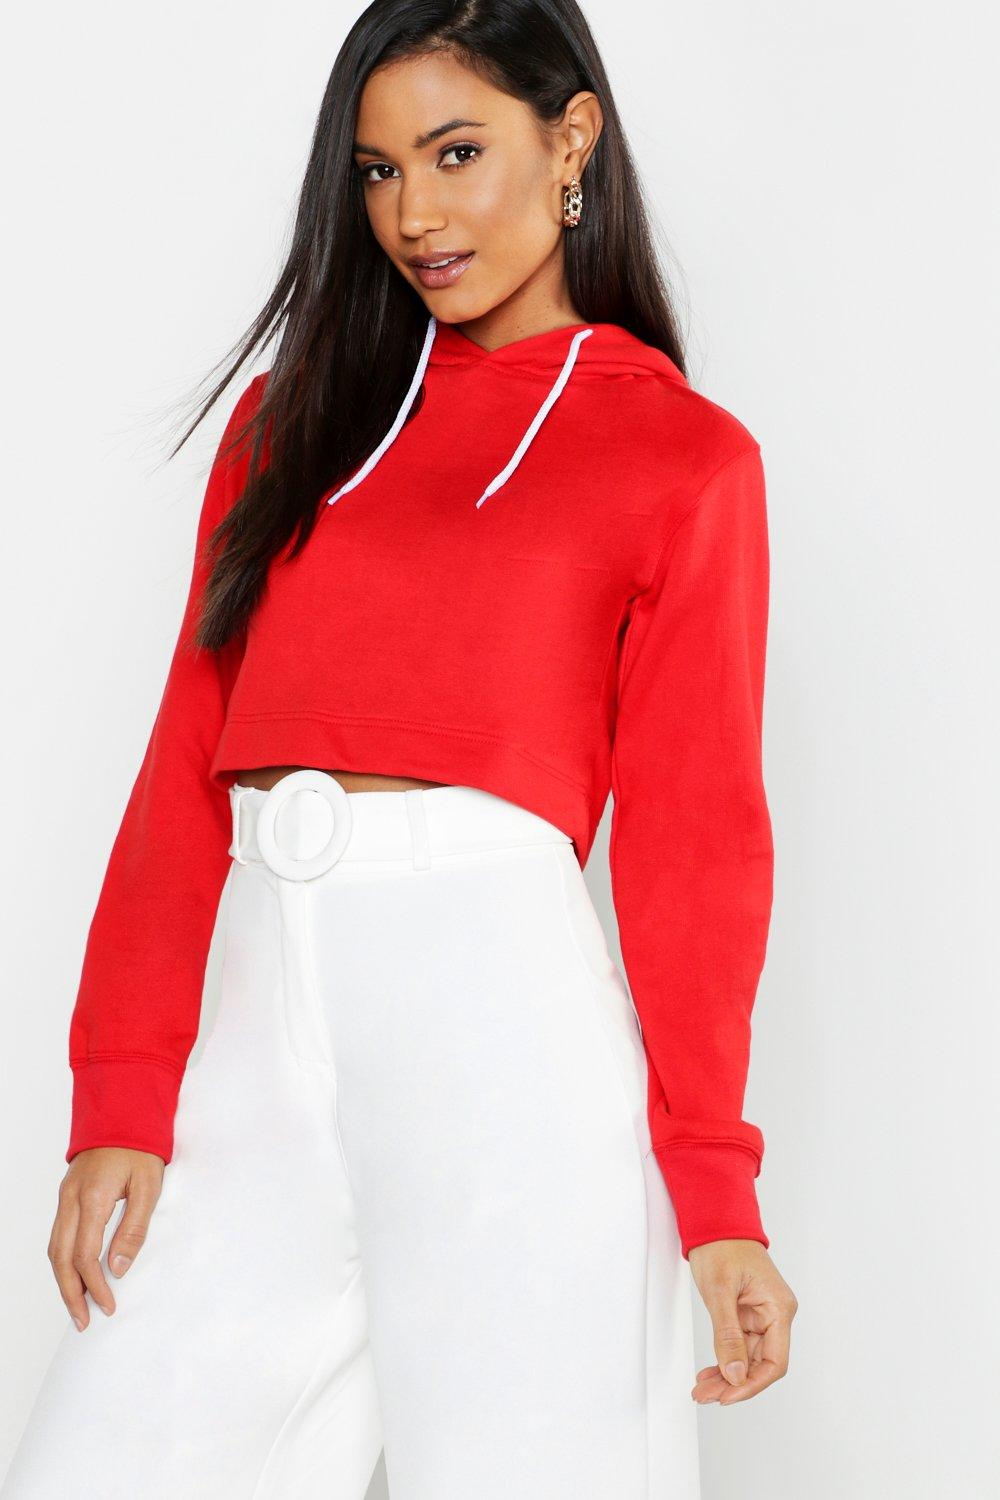 Athleisure red Crop Hoodie Crop Hoodie Athleisure red qOnw6YwW5Z